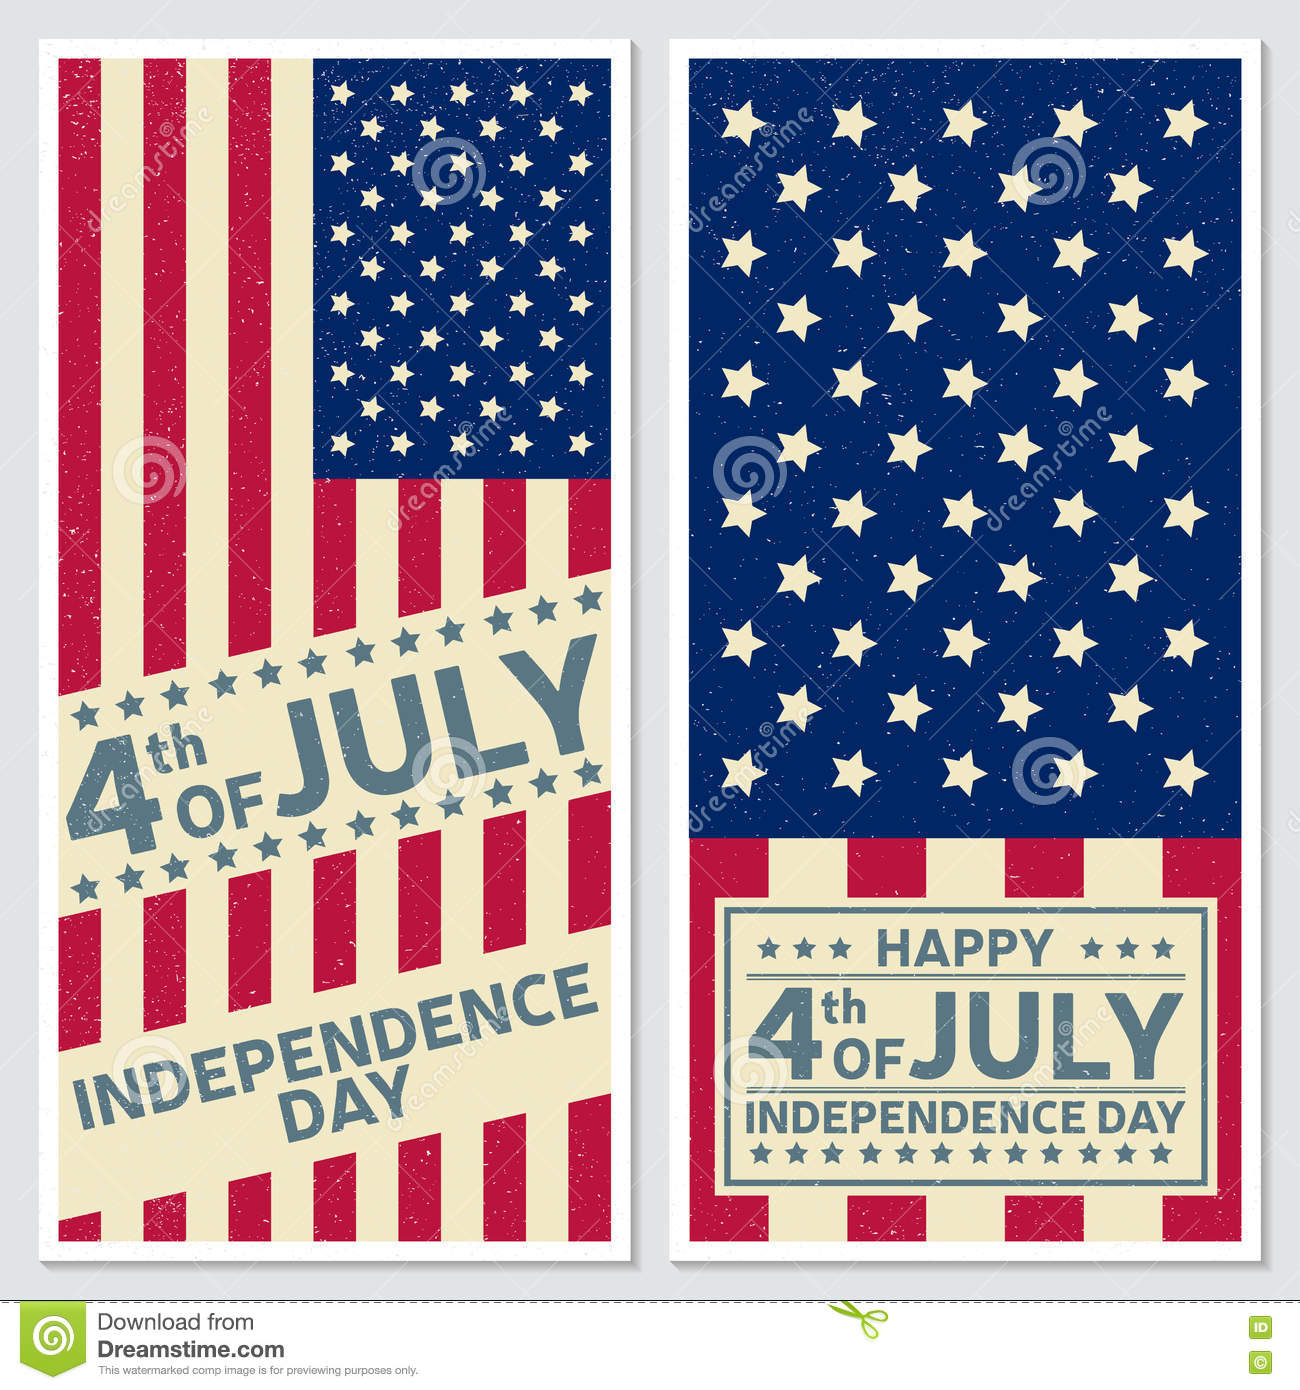 Happy 4th Of July, Independence Day Greeting Card, Flyer